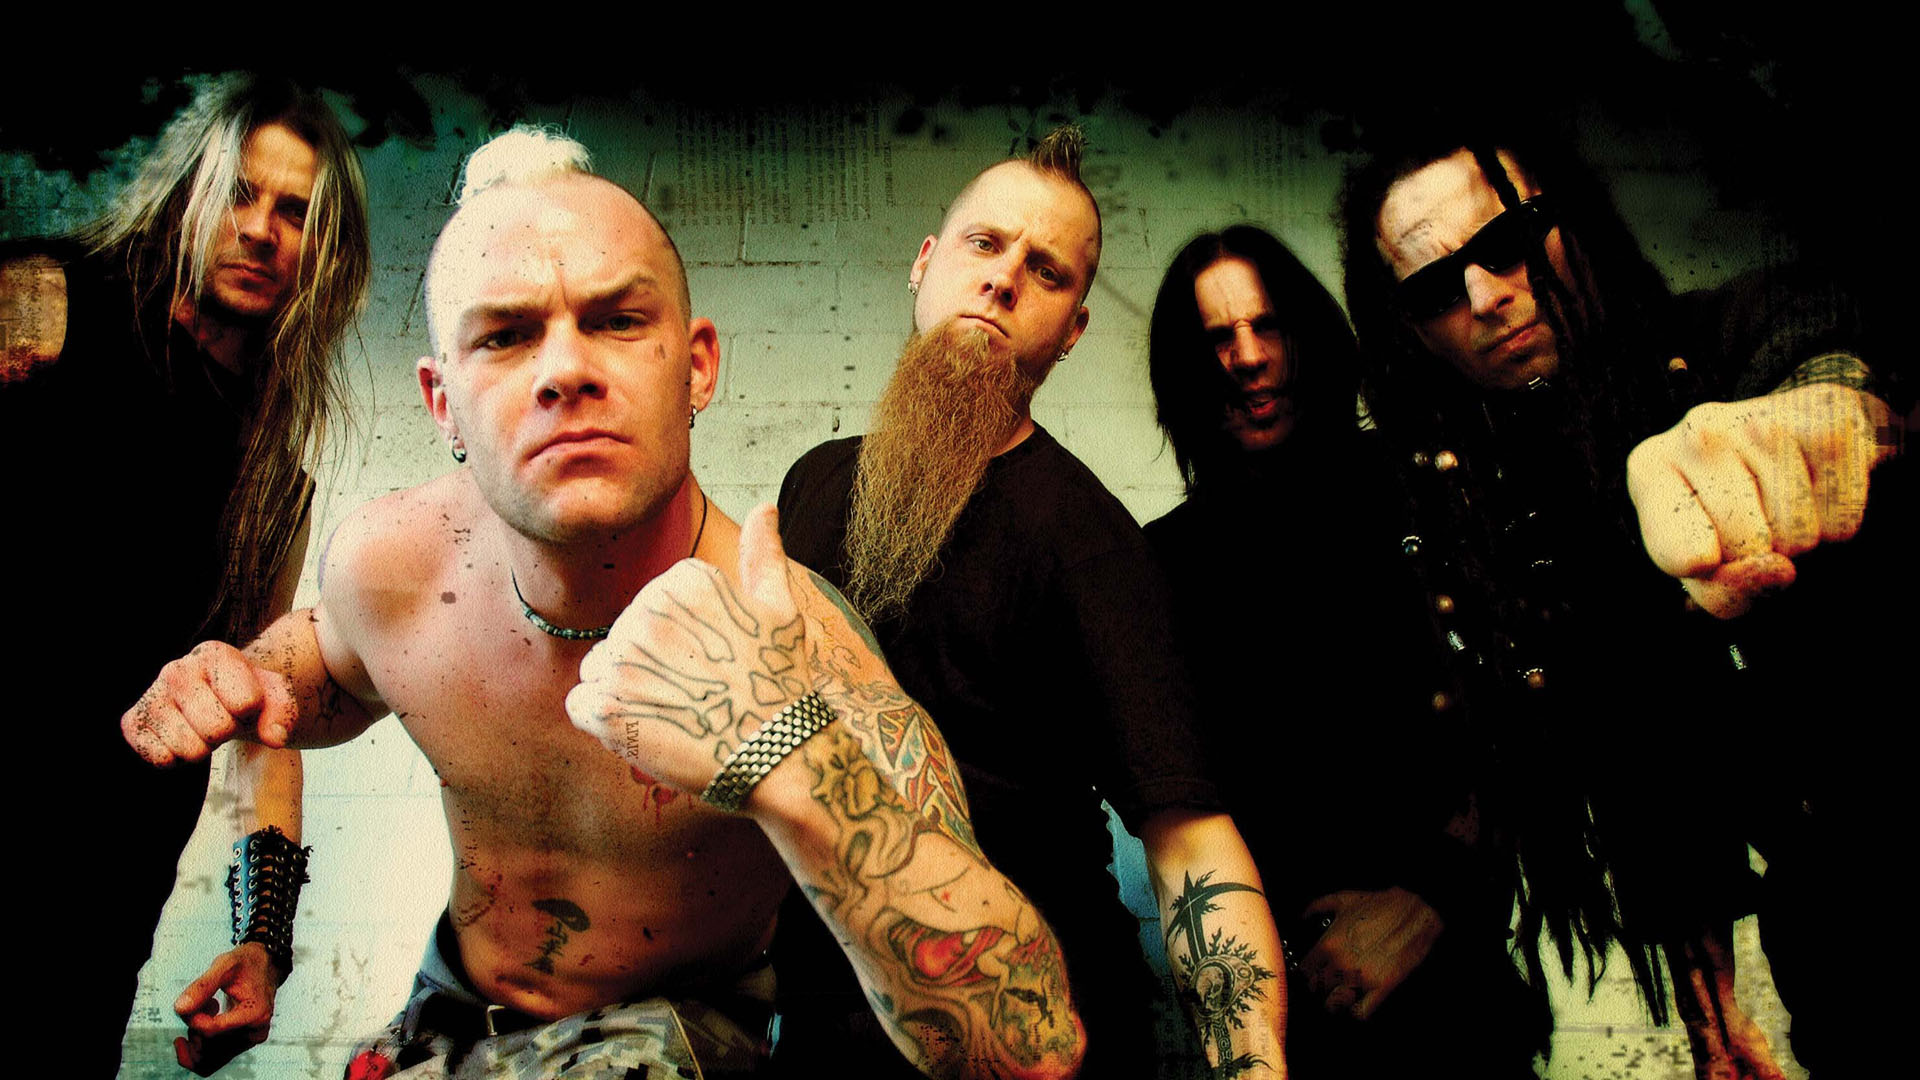 Five Finger Death Punch - 1920x1080